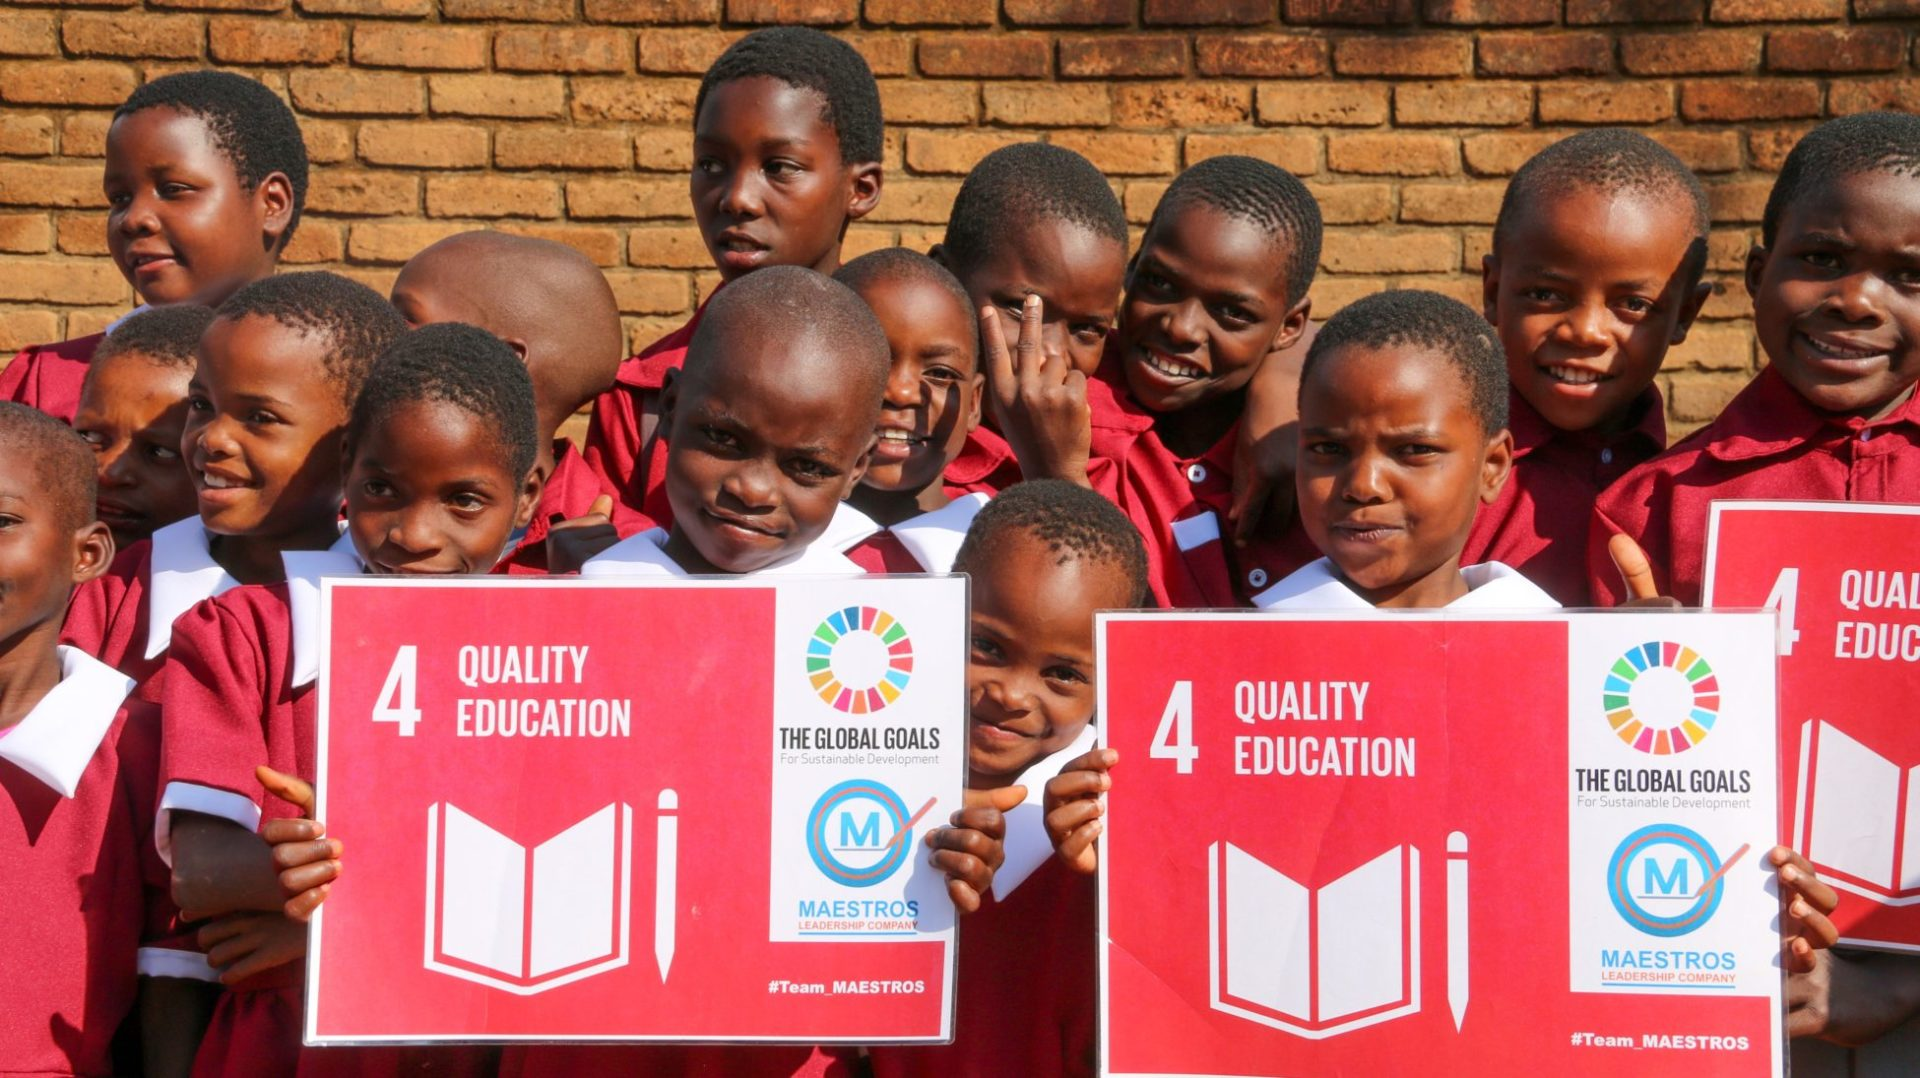 A group of school - children dressed in red school uniforms - pose for the camera, holding up placards with sustainable development goal number 4.